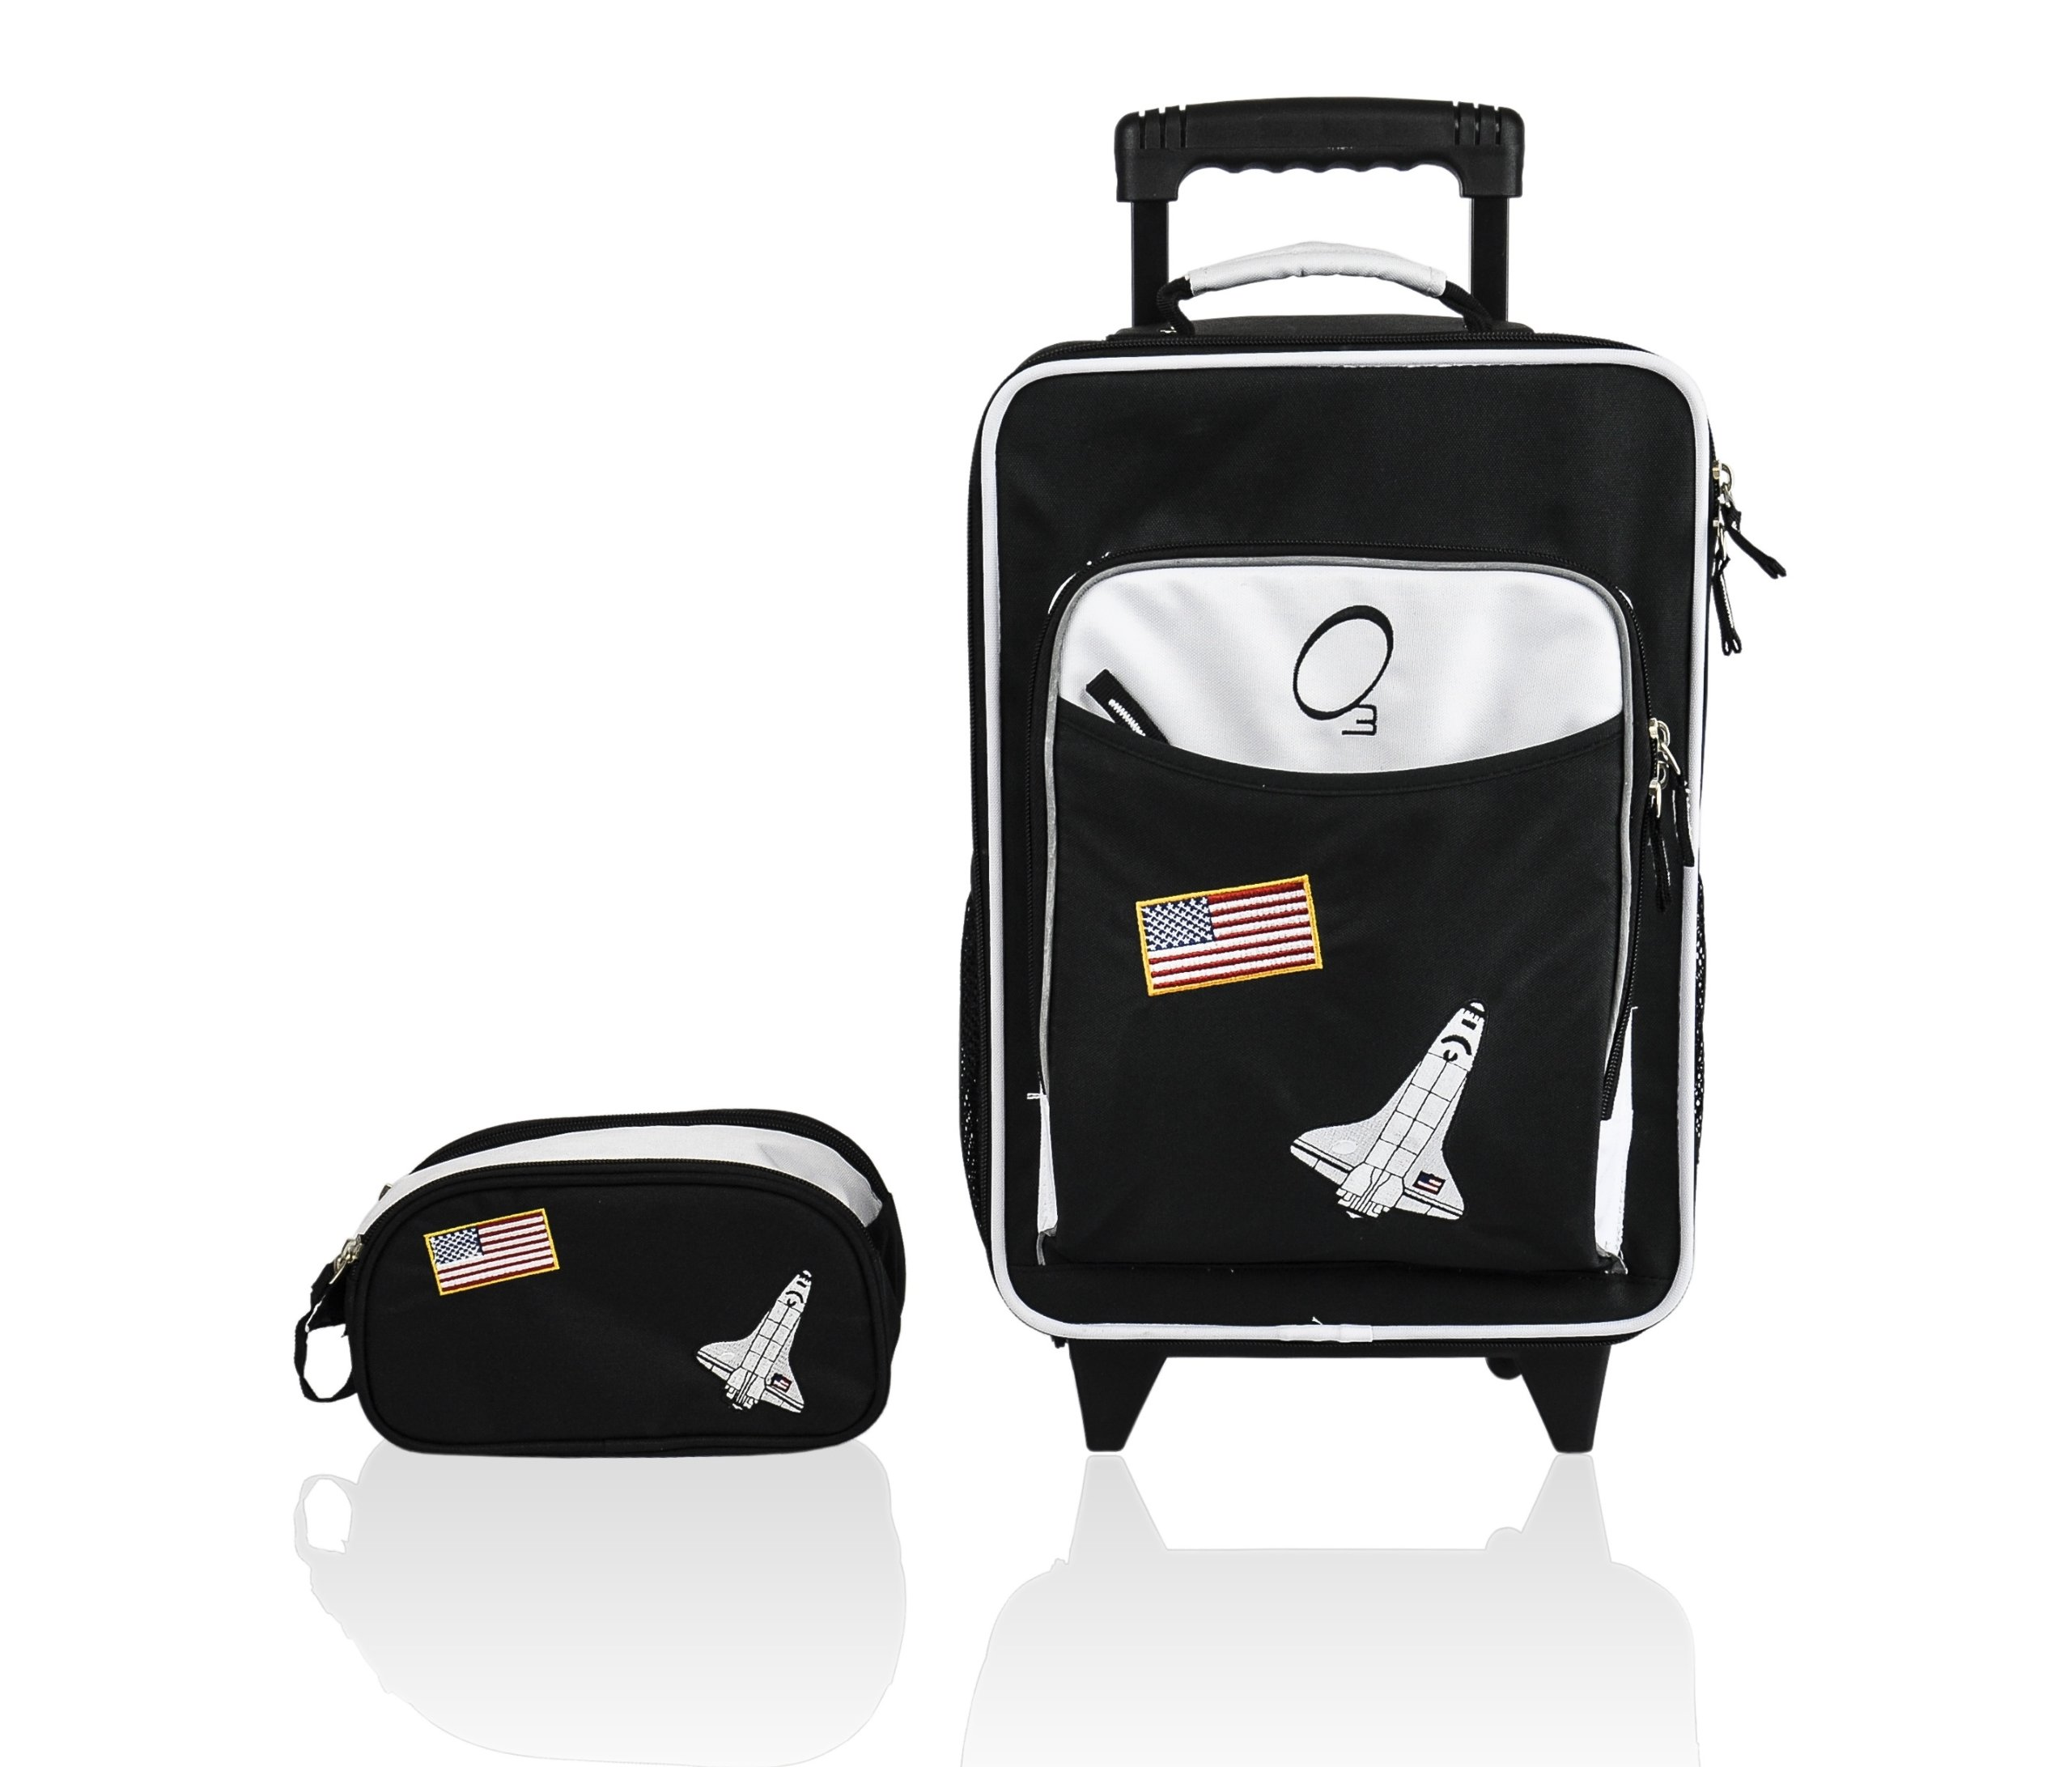 Kids Luggage Set, Large Rolling Piece and Travel Toiletry Case (Space) - Obersee by Obersee (Image #1)